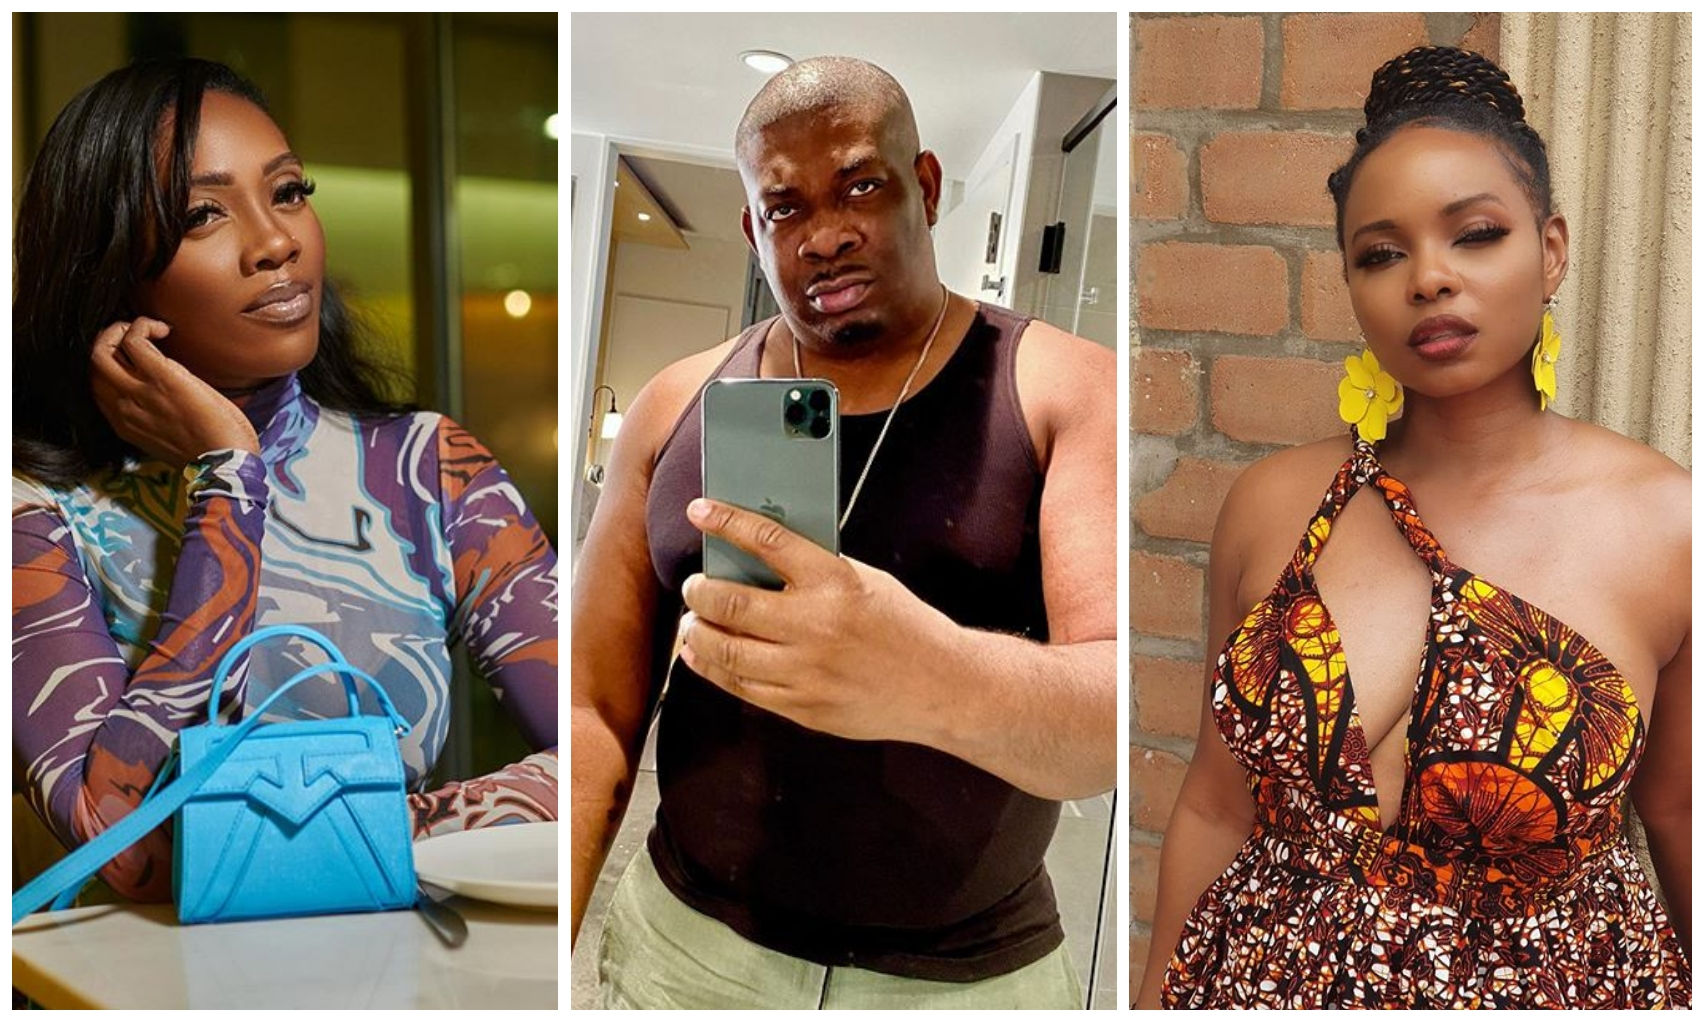 DSS quizzes Don Jazzy, Tiwa Savage, Yemi Alade over alleged political statement